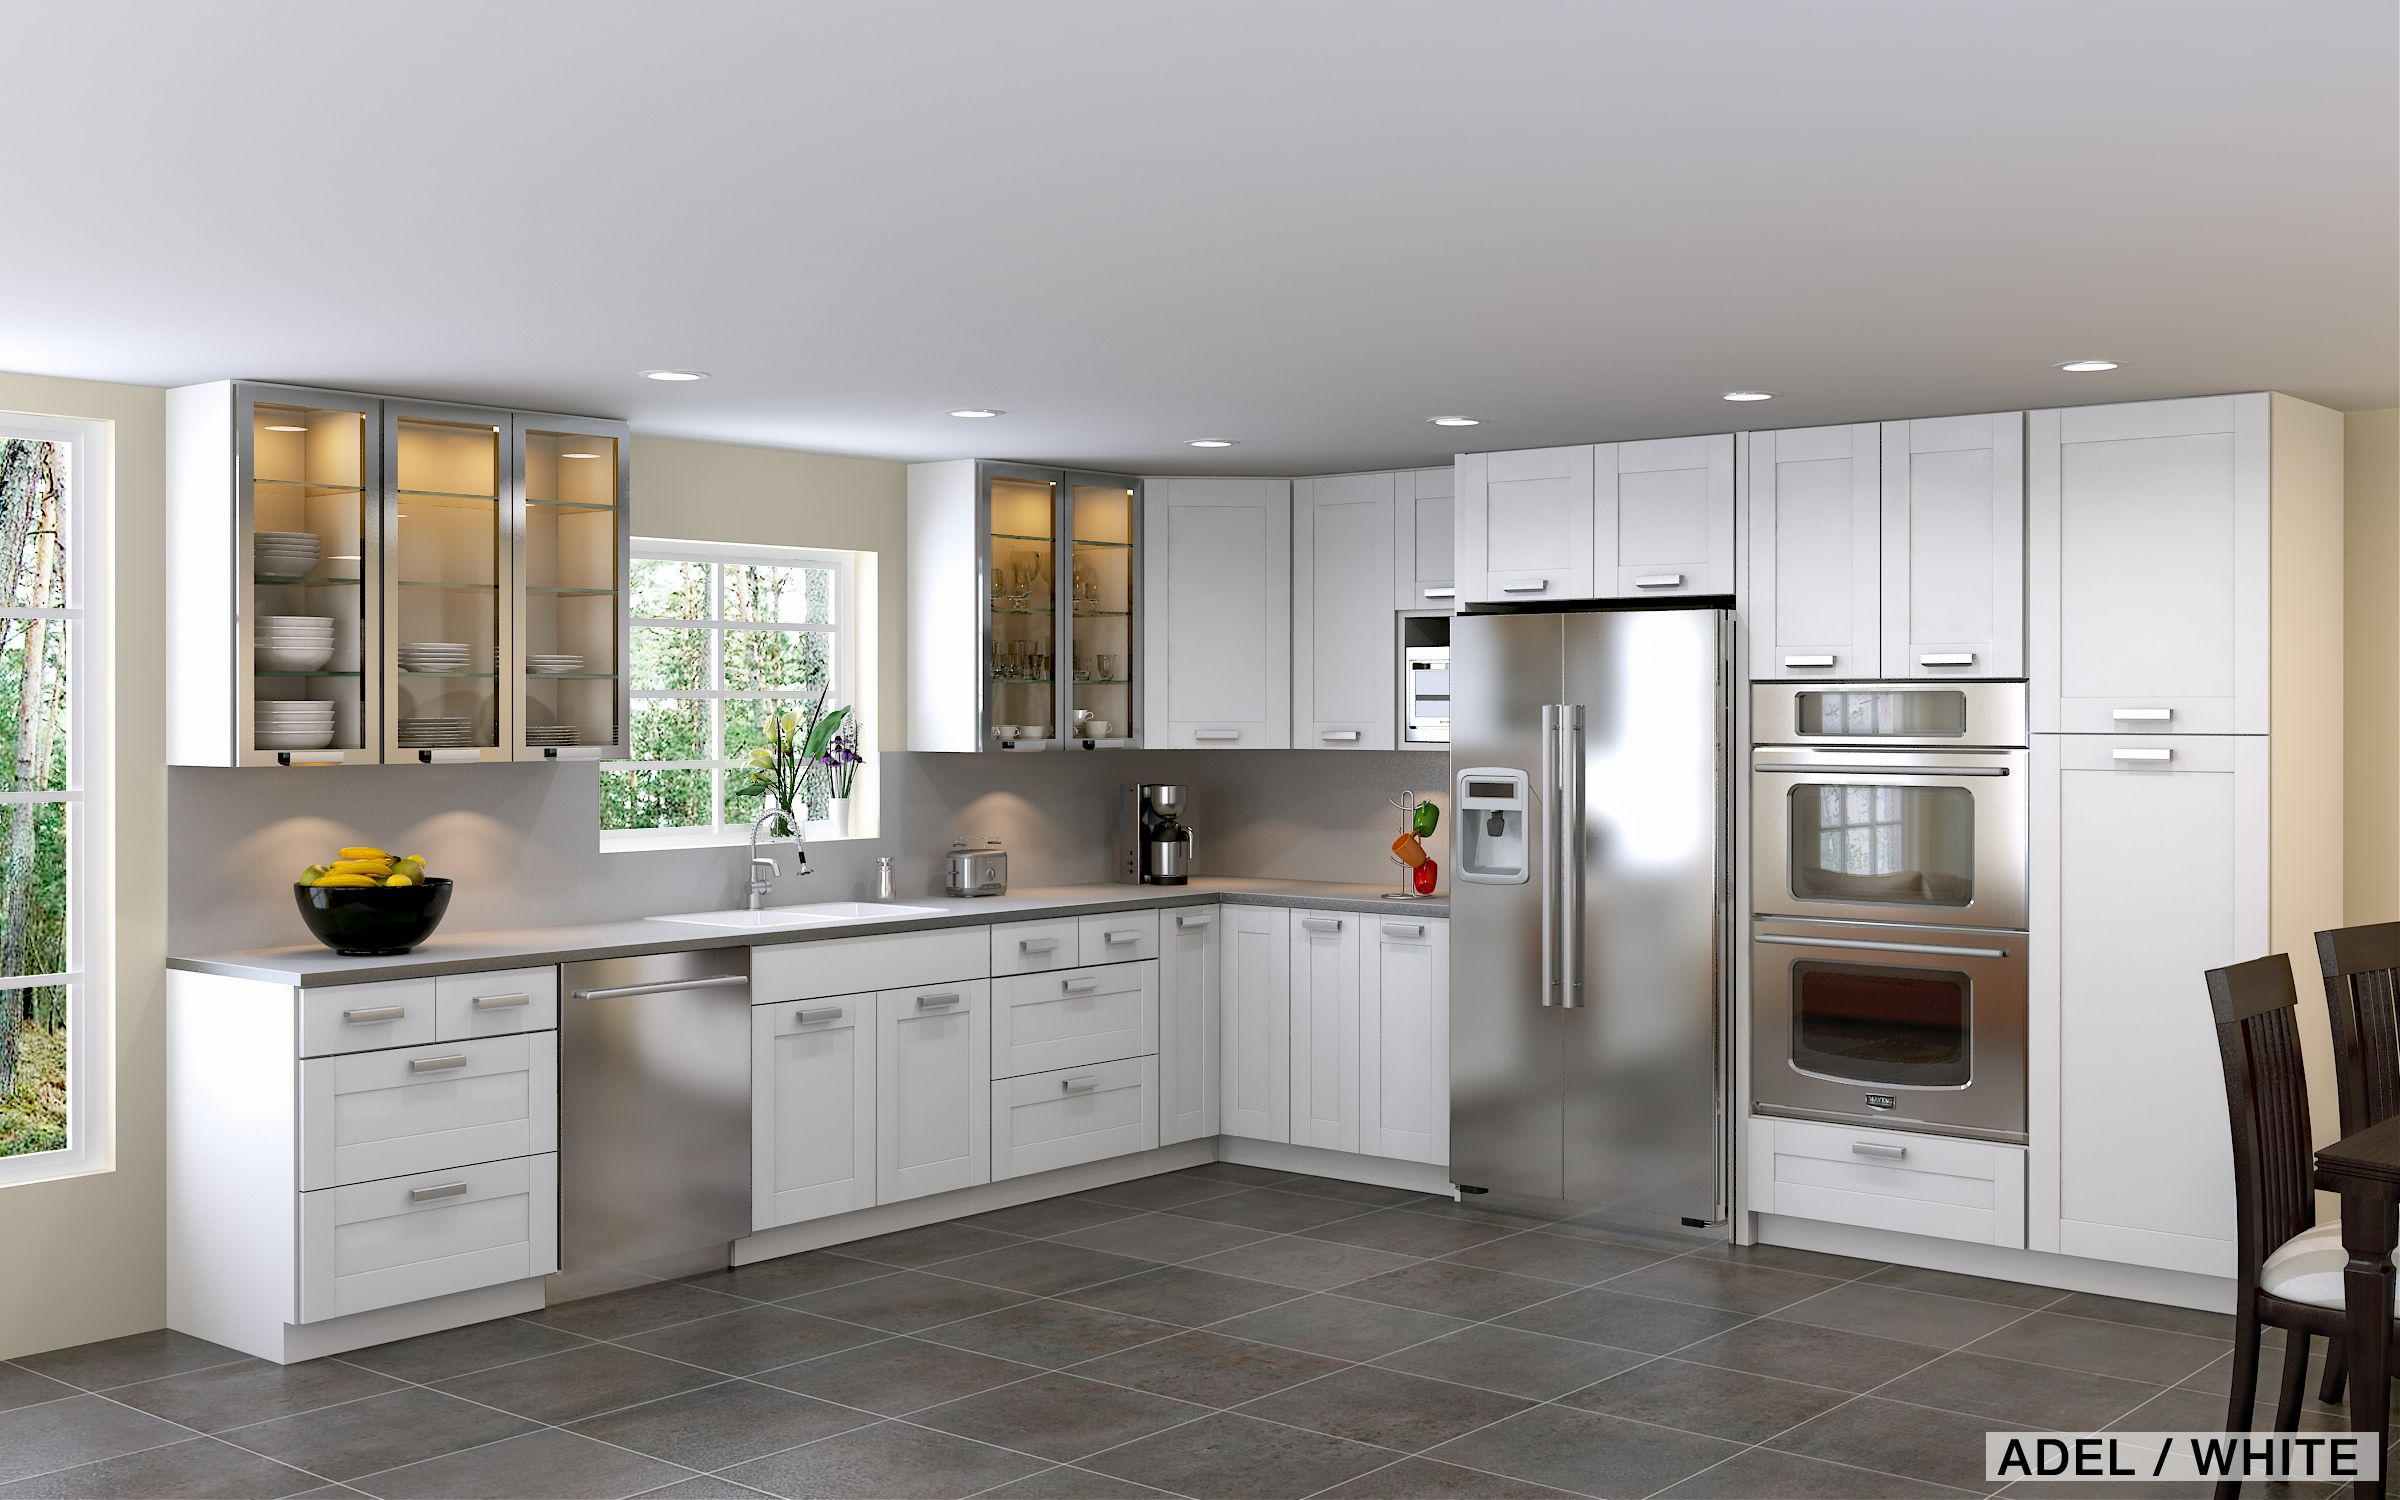 Kitchen Layout Design Ikea Kitchen Designer Tips Pros And Cons Of An L Shaped